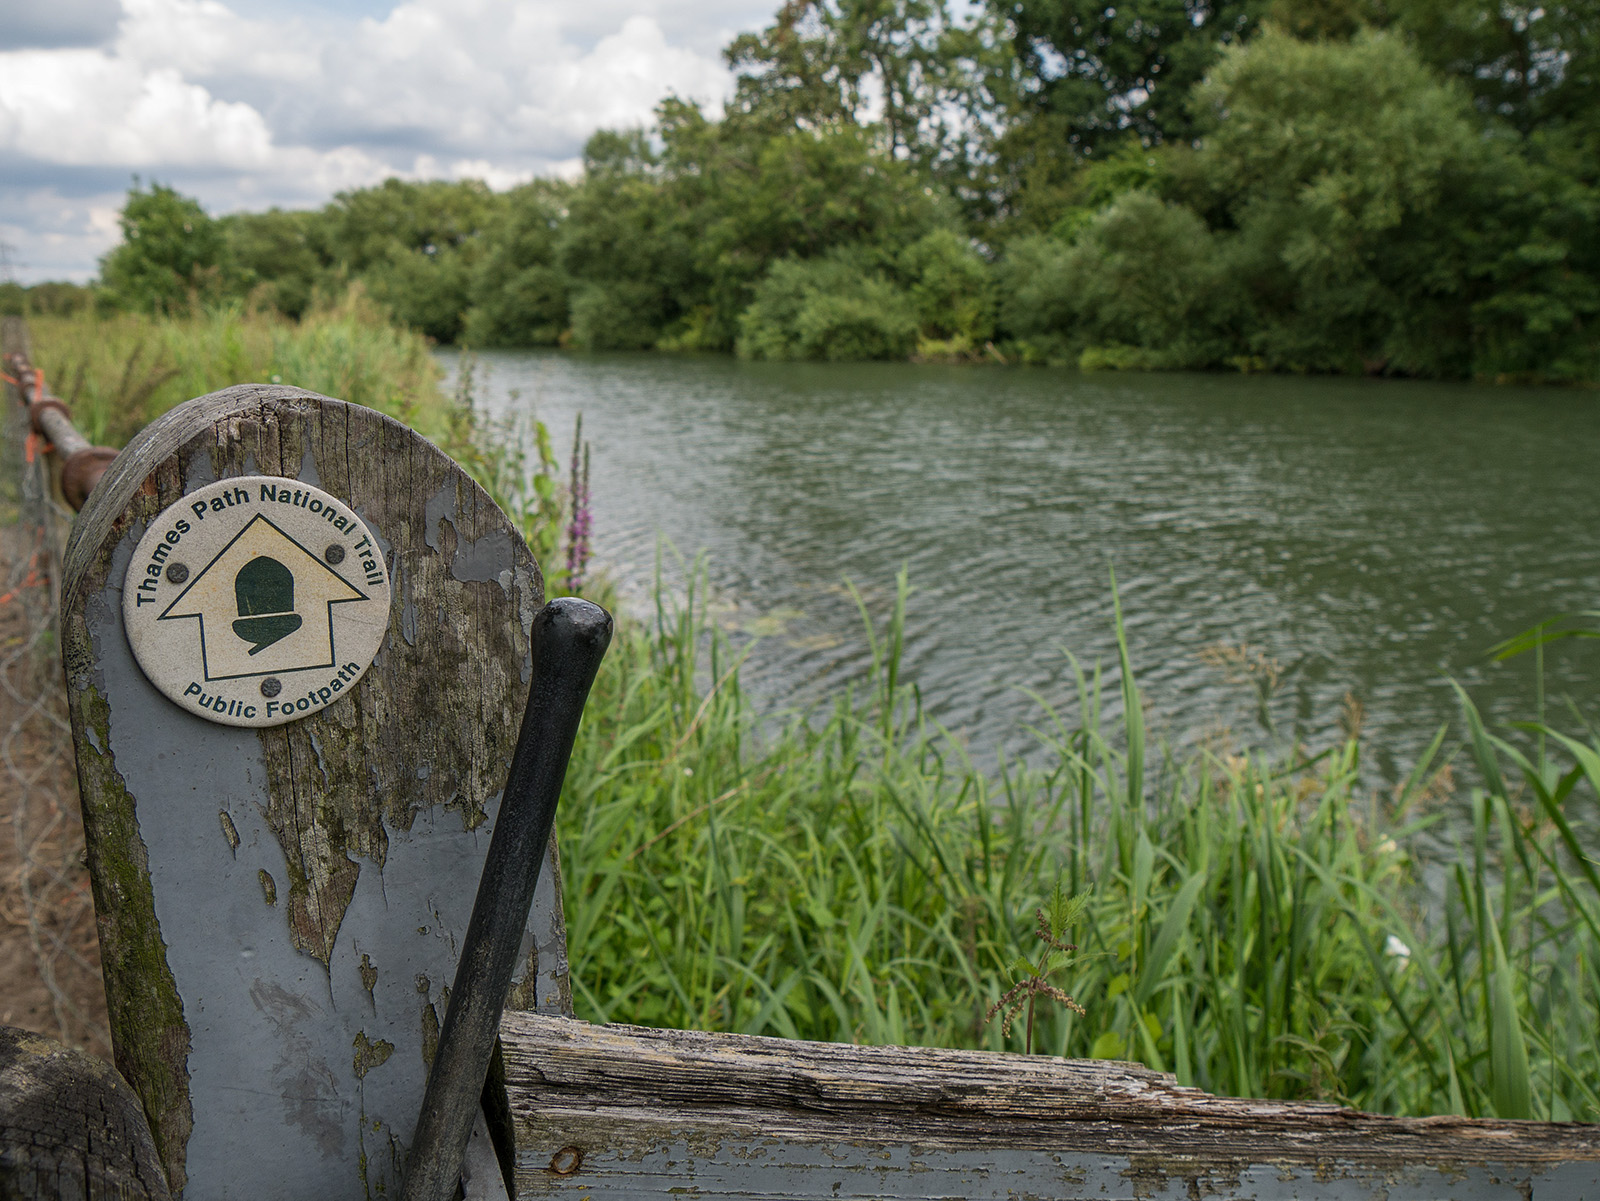 Looking back for a while - classic Thames Path marker